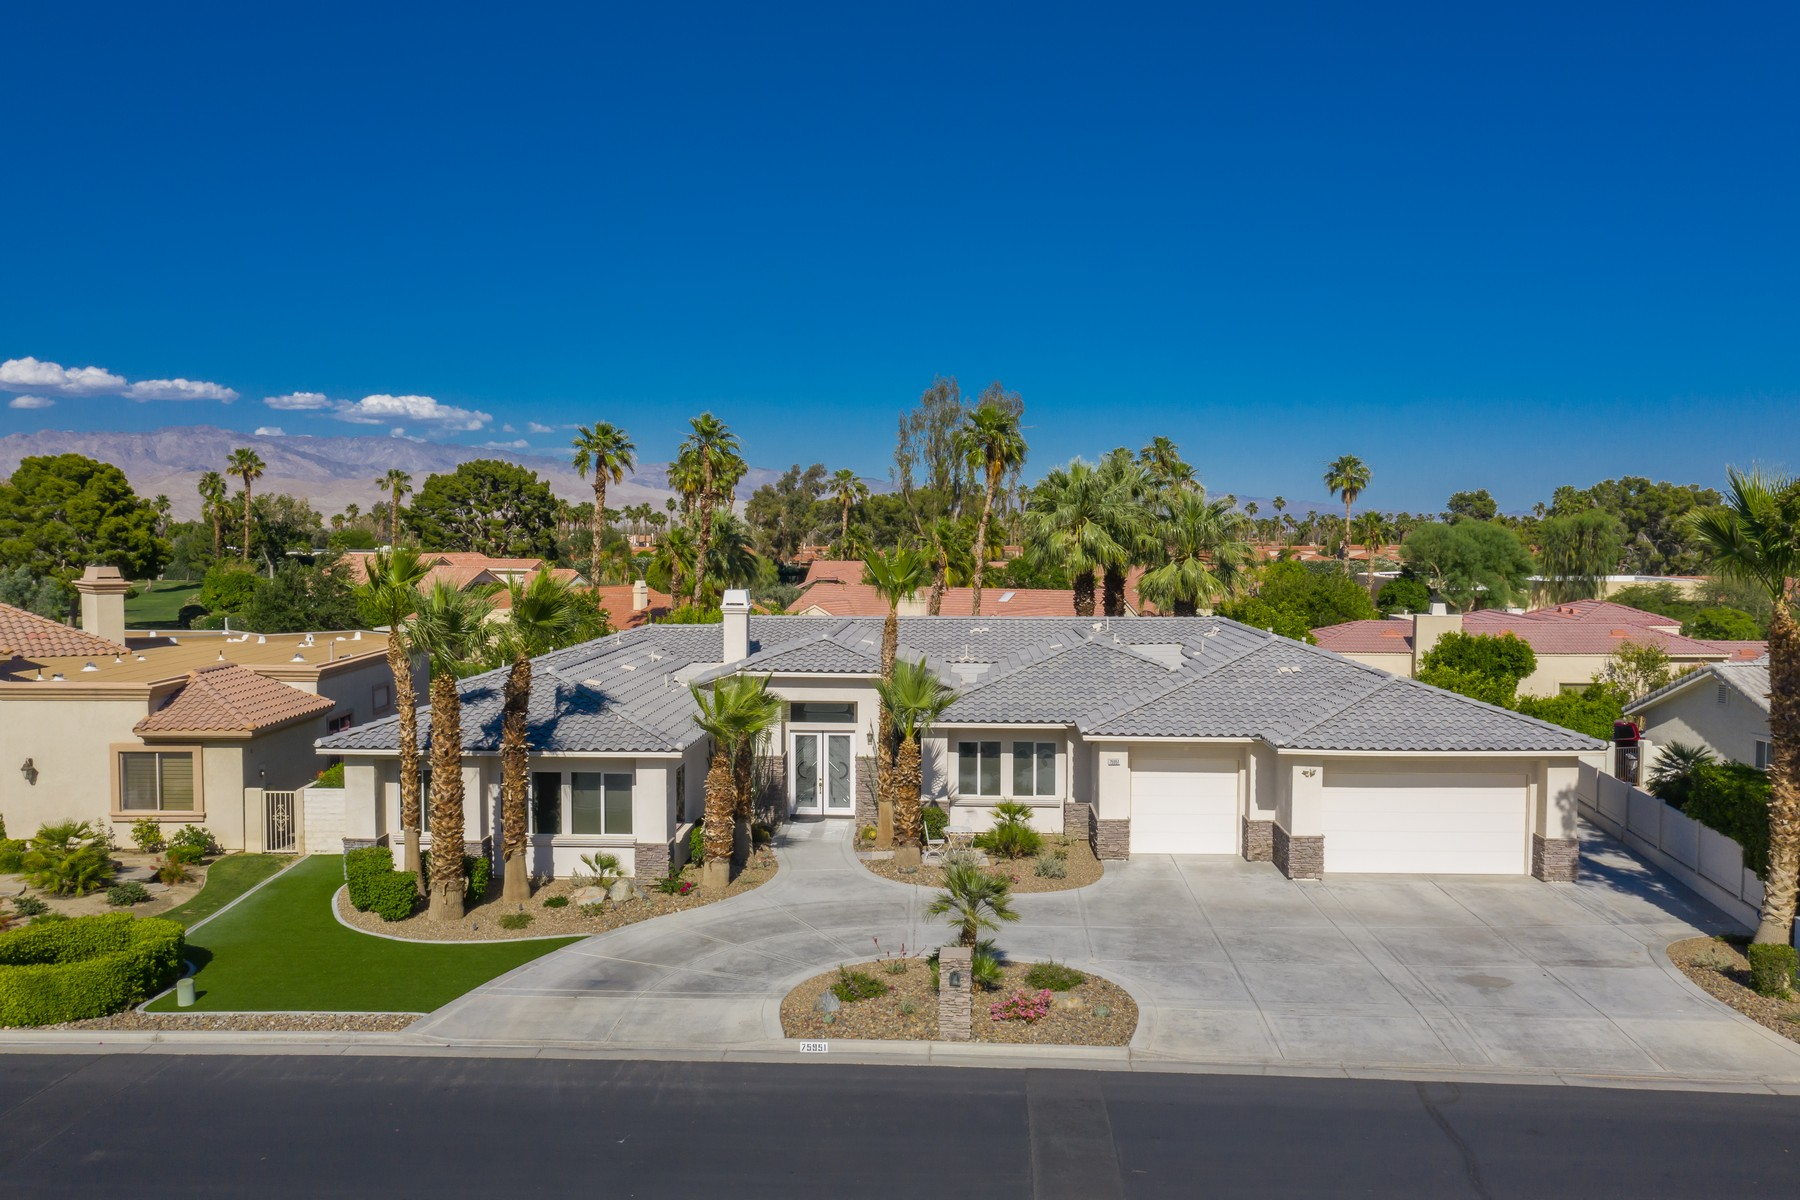 Single Family Homes for Sale at 75951 Mozambique Drive N Palm Desert, California 92211 United States